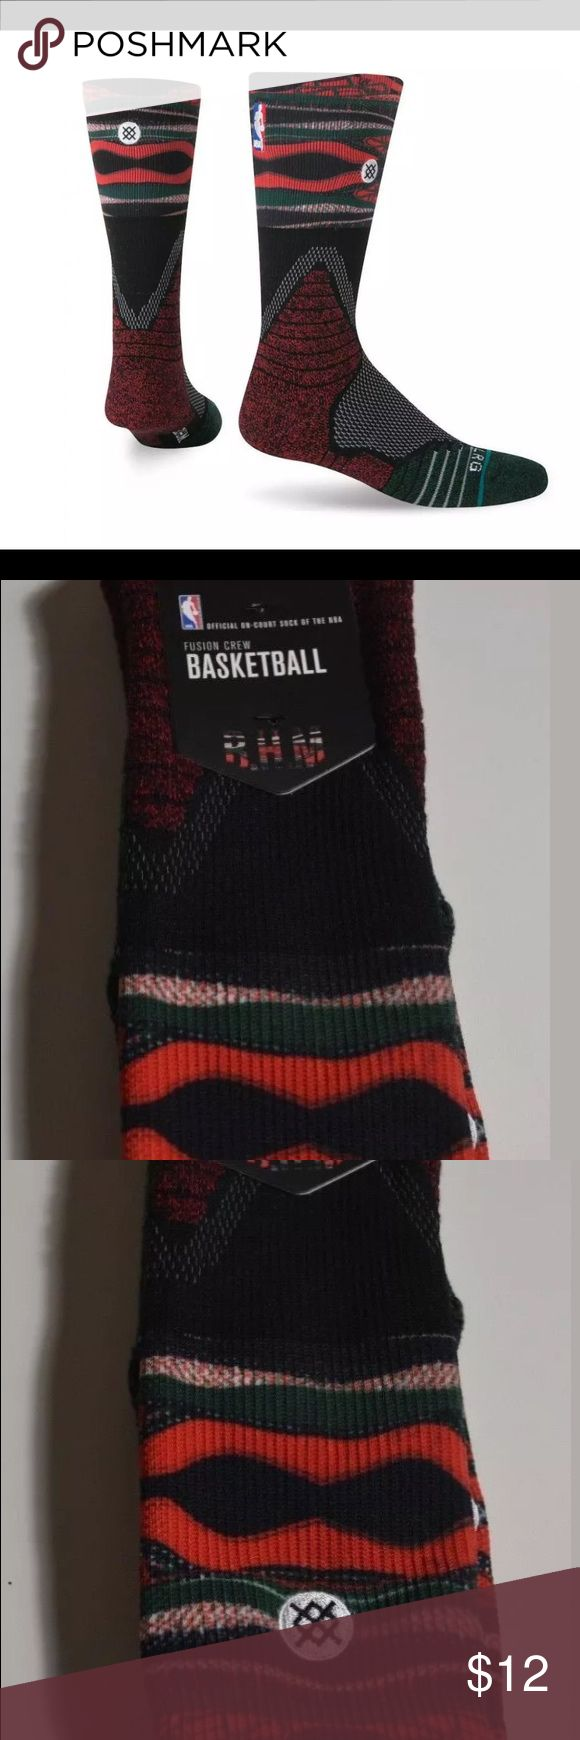 STANCE NBA Crew Basketball Socks Men's Size L 9-12 NEW STANCE NBA Fusion Crew Basketball Socks Black History Month Mens Size L 9-12  Red, multicolor  Black History Month Fusion crew Fit no 559 Crew height Engineered cushioning Active secure support 64% polyester, 22% elastane, 9% combed cotton, 5% elastic M559A17BHM - RED - Red - L Stance Underwear & Socks Athletic Socks